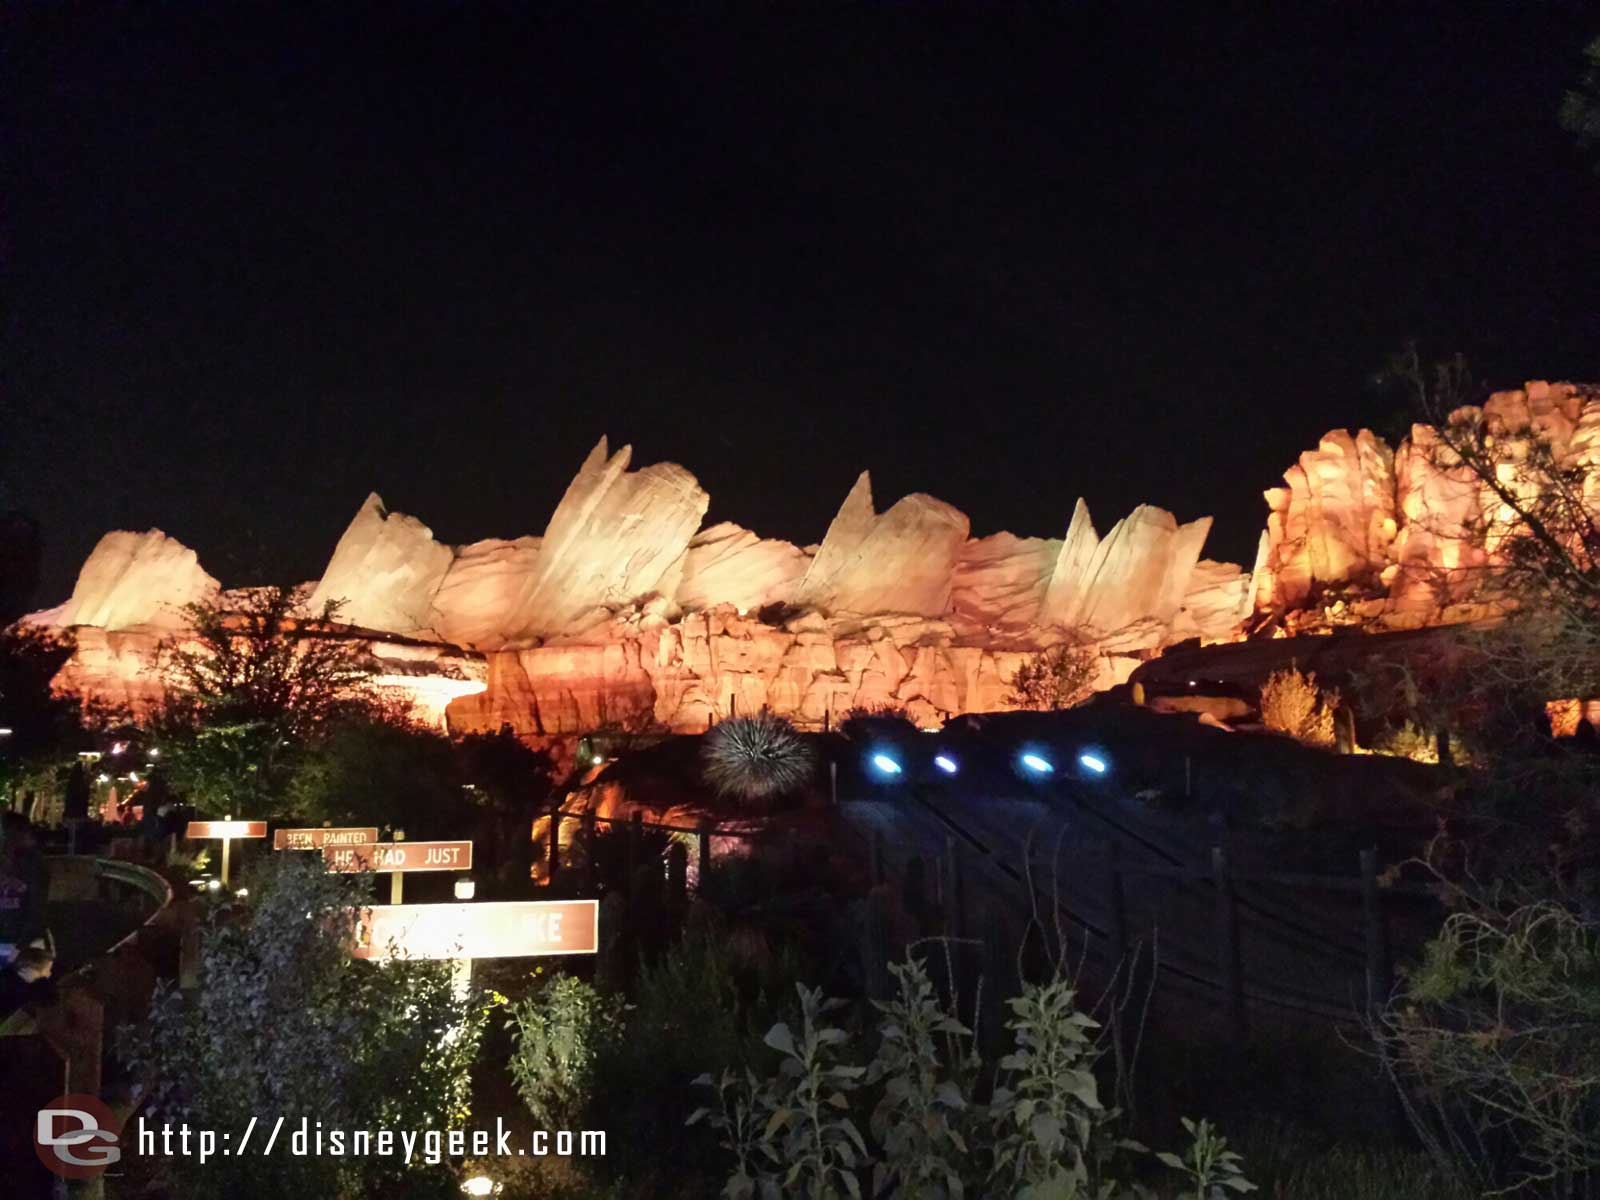 The Cadillac Range in Ornament Valley #CarsLand